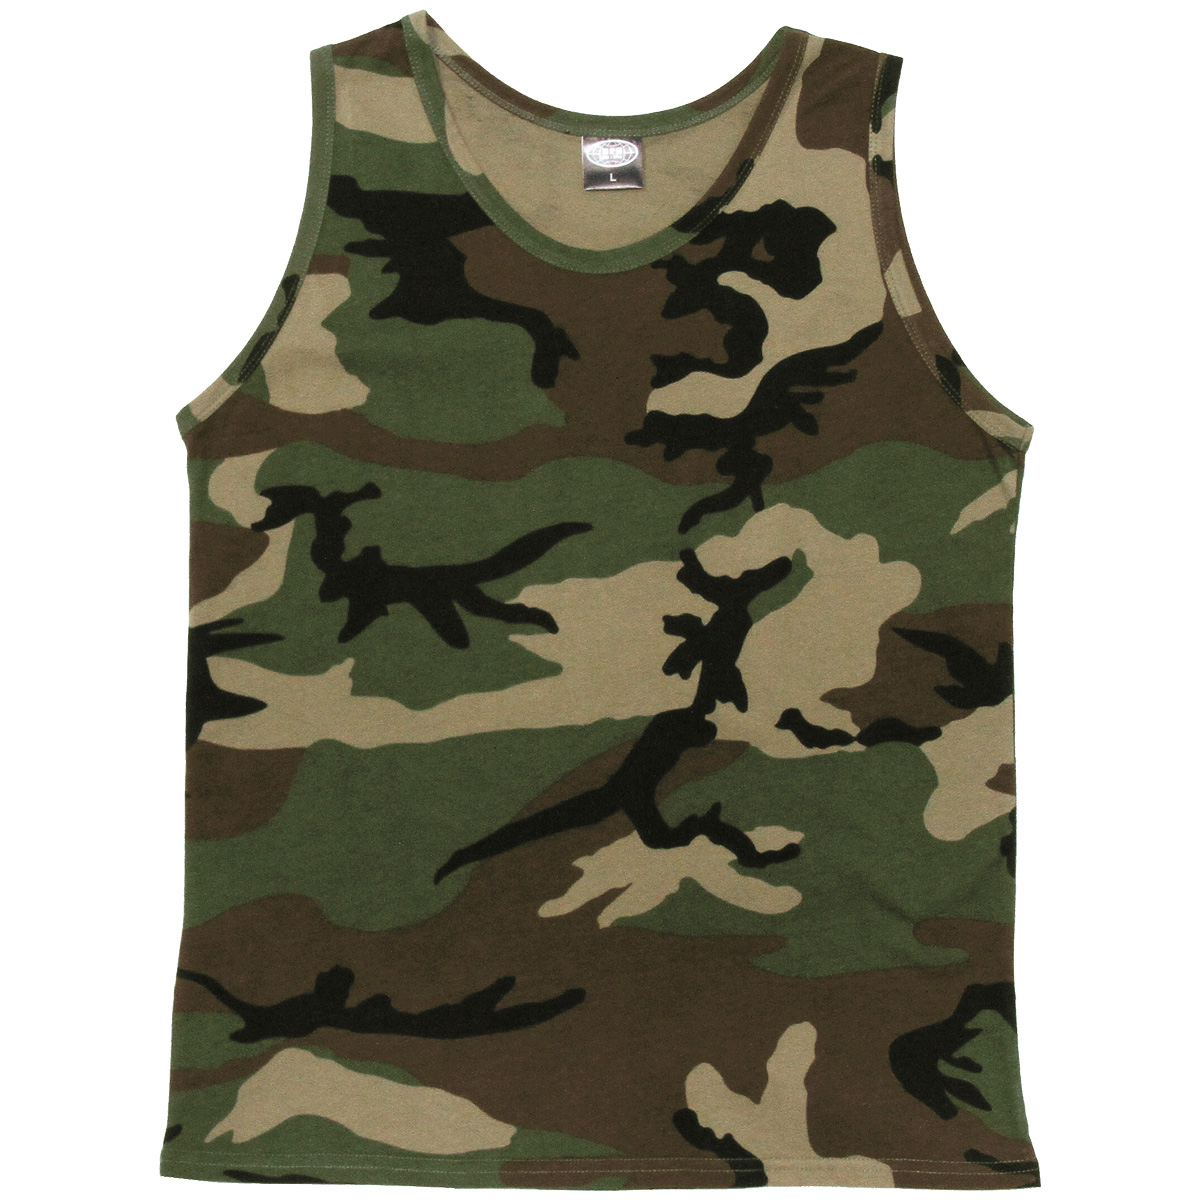 ARMY COMBAT TANK TOP MILITARY CADET MENS VEST COTTON SINGLET WOODLAND CAMO S-XXL